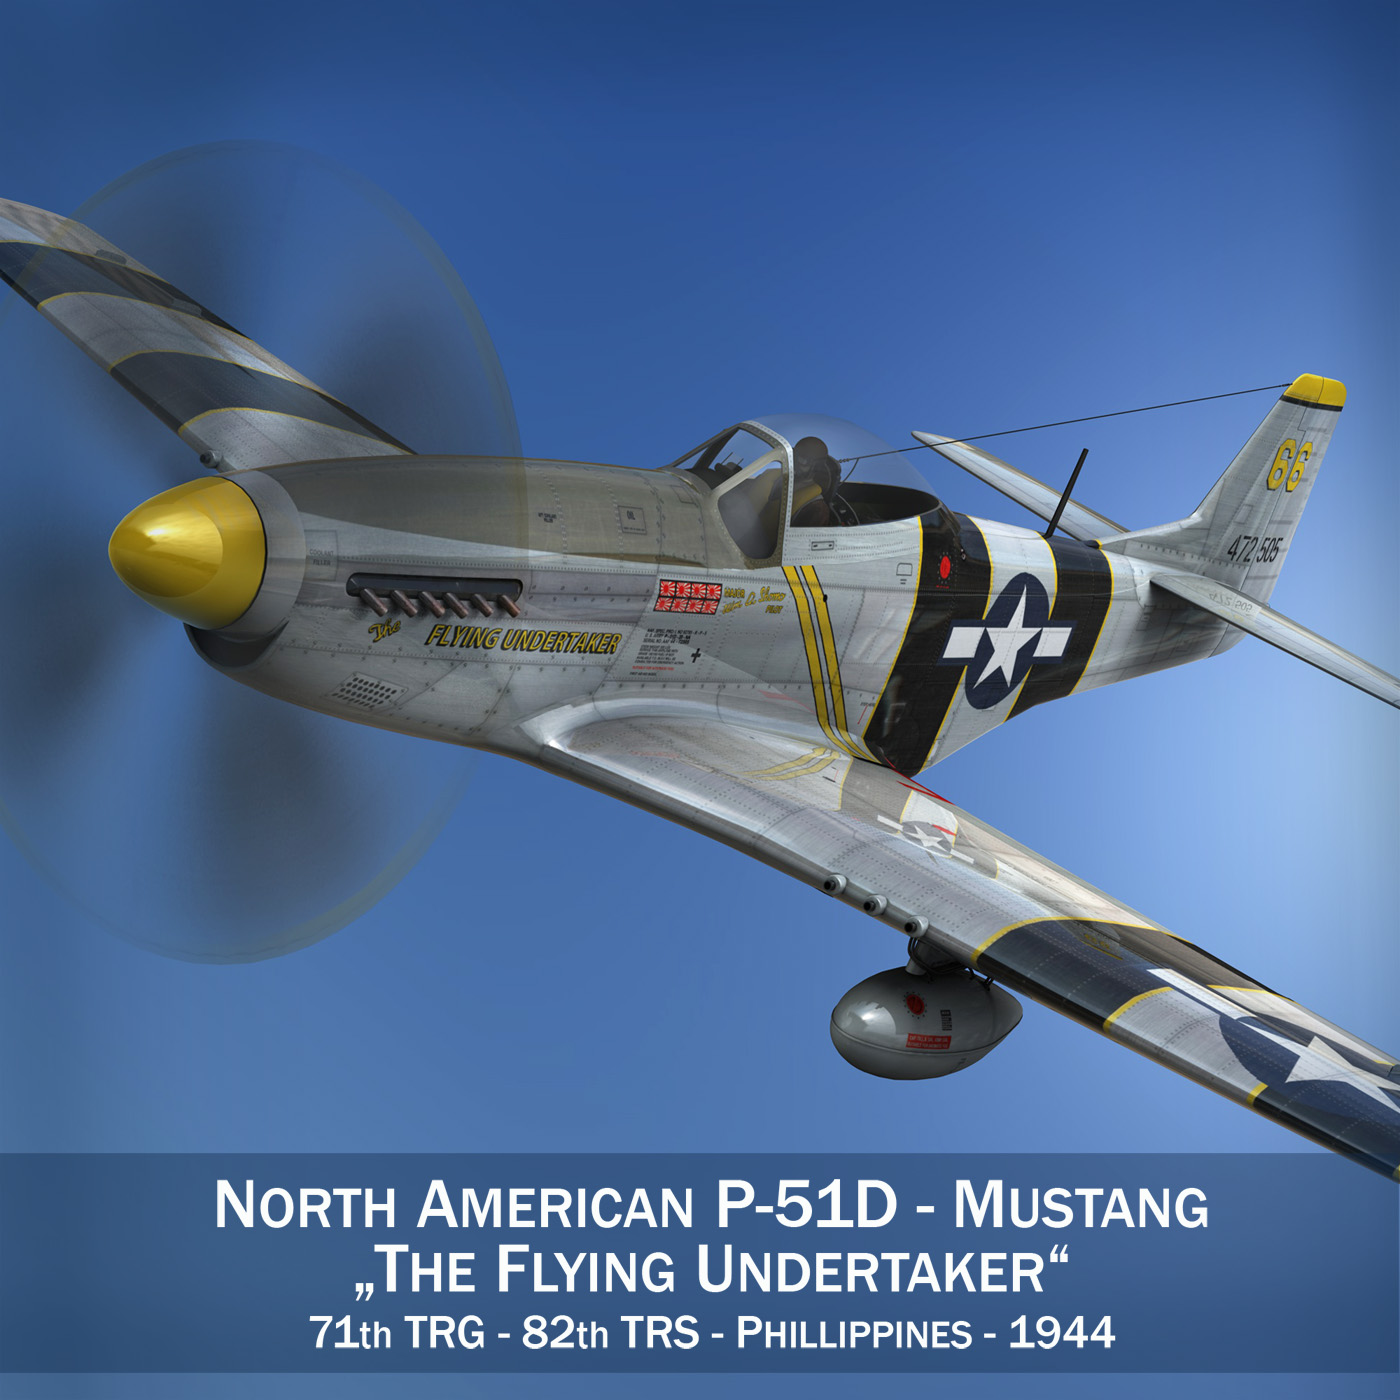 north american p-51d mustang – flying undertaker 3d model fbx c4d lwo obj 280155